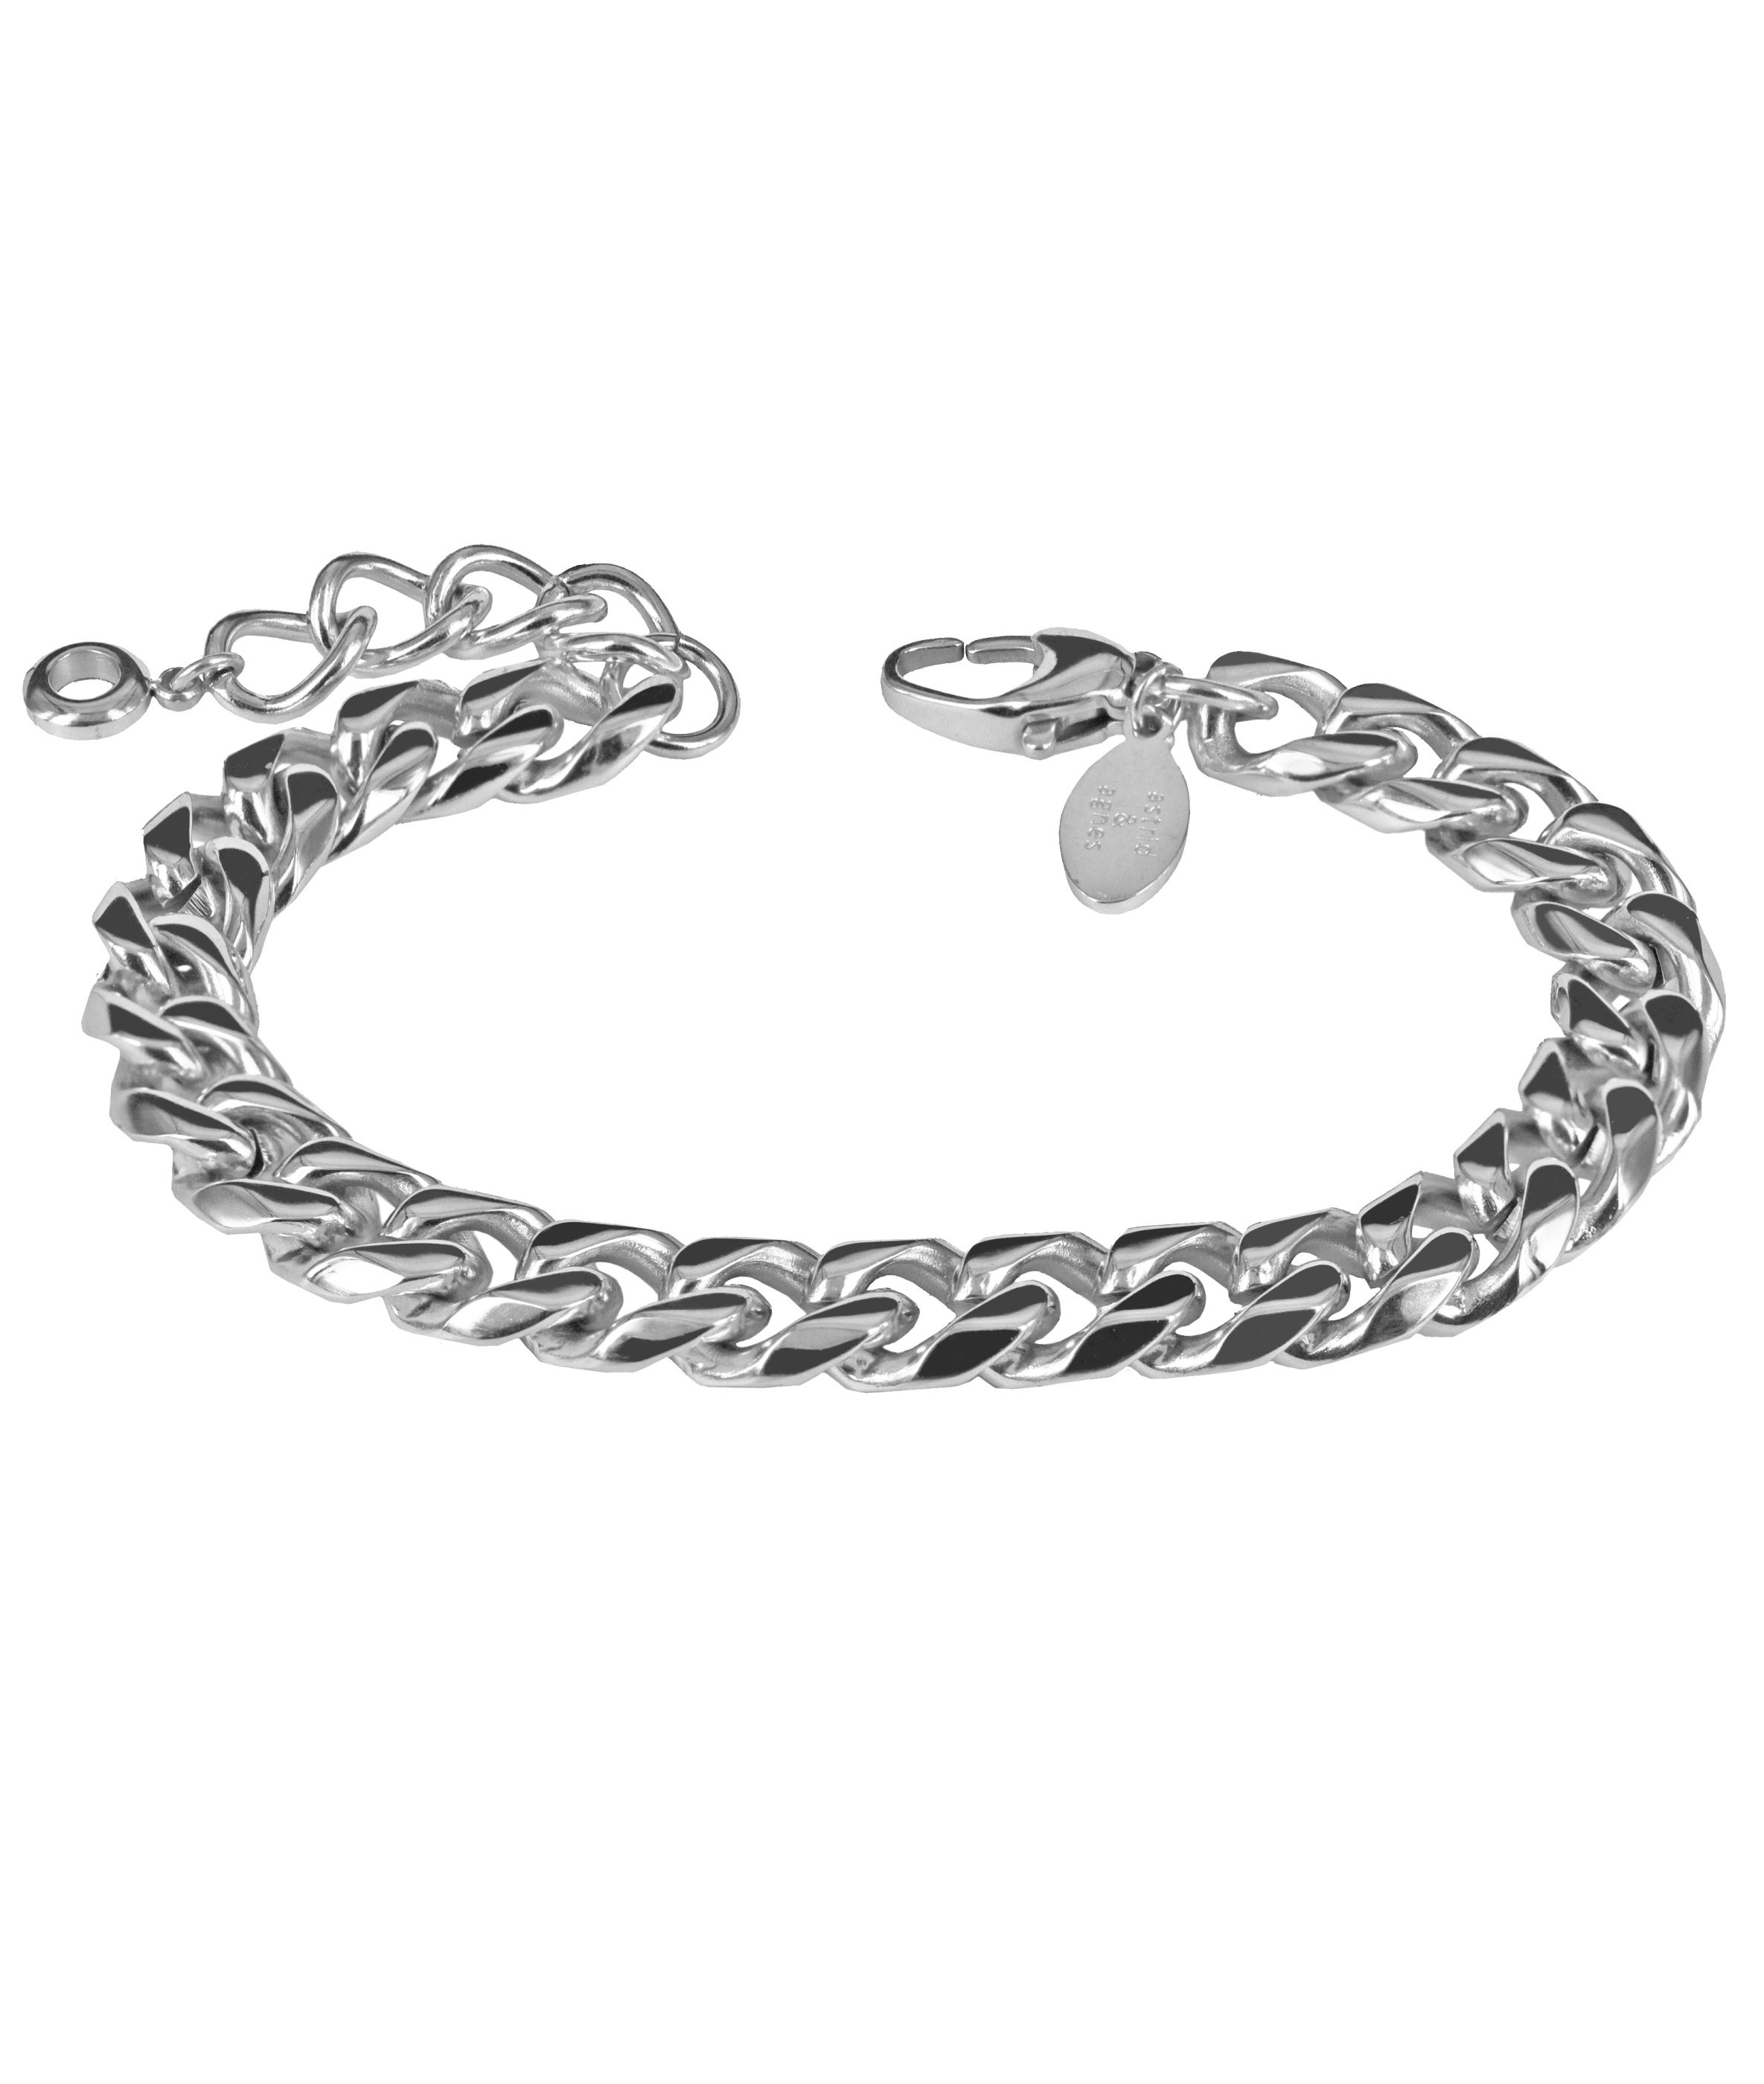 HAILEY-SteelbraceletwebbOK